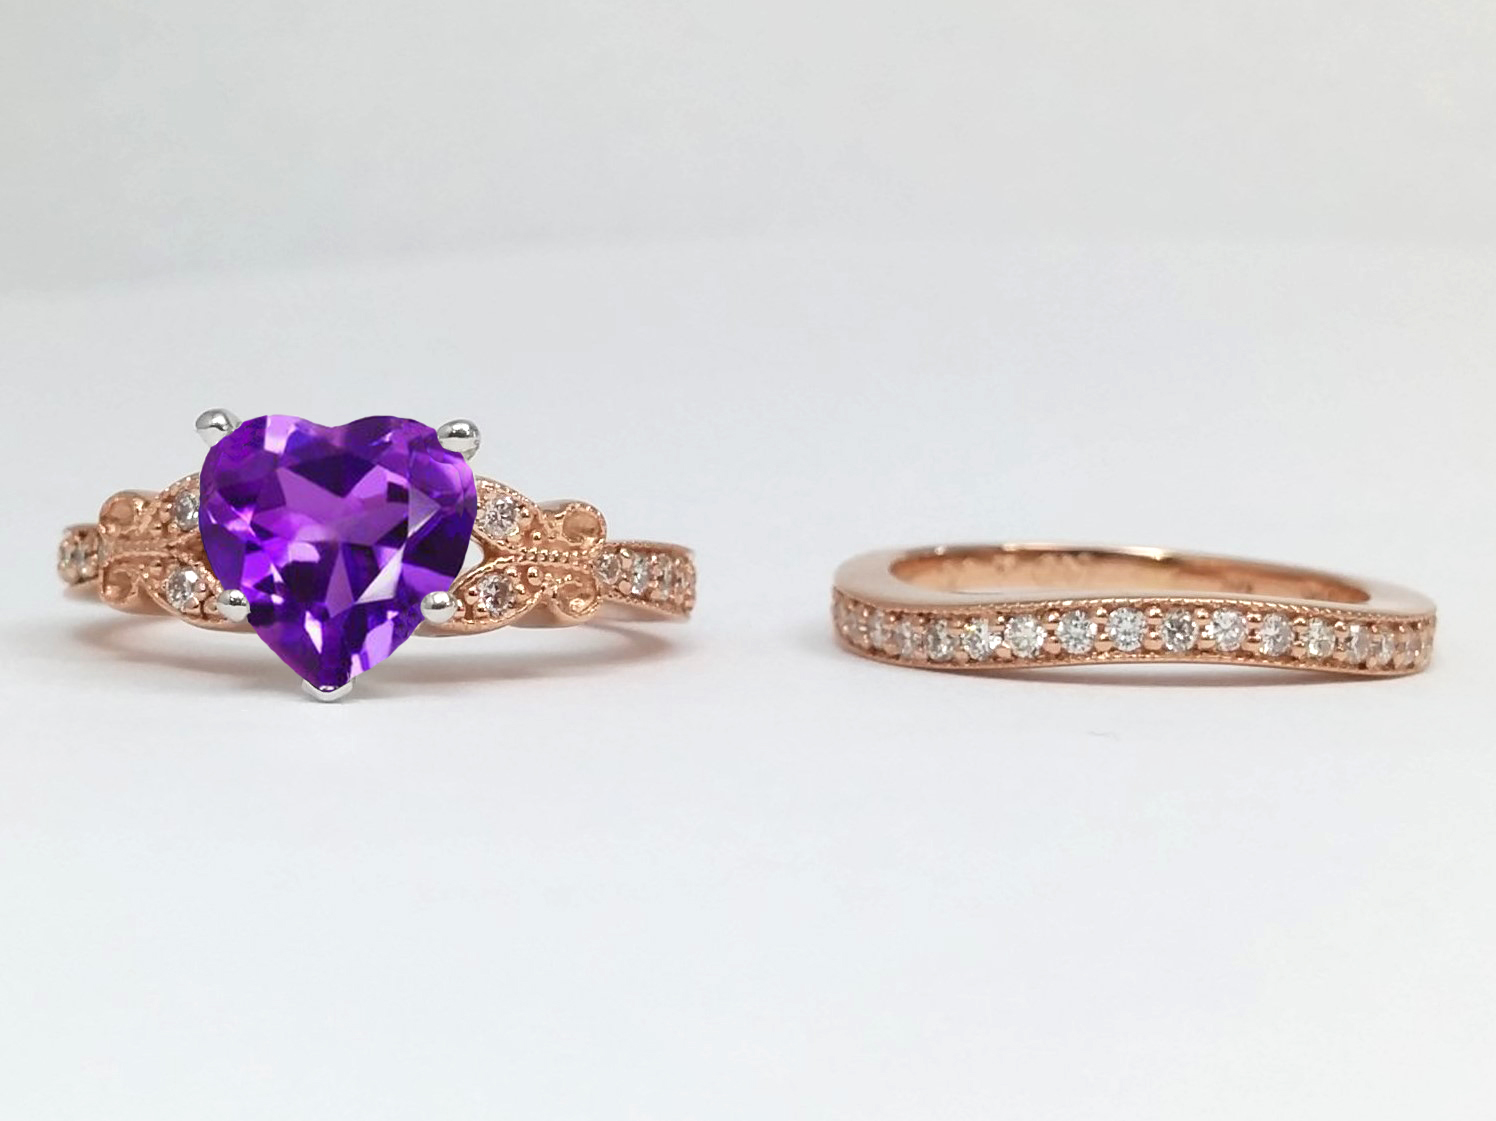 Amethyst Butterfly Vintage Engagement Ring & Matching Wedding Band, Rose Gold